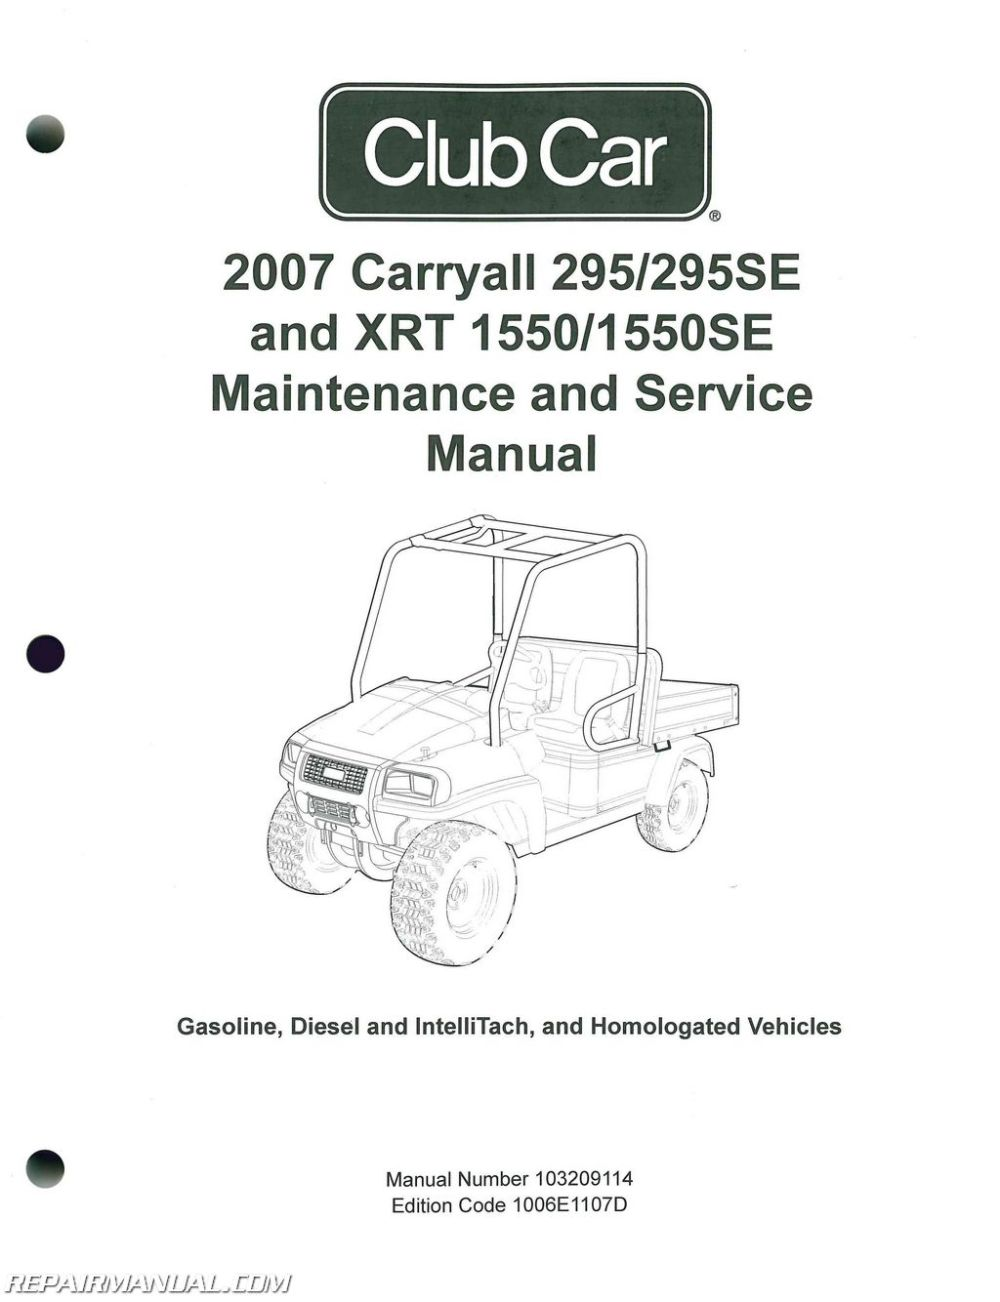 medium resolution of 2007 club car carryall service manual 295 295se xrt 1550 1550se rh repairmanual com gas club car wiring diagram 48 volt club car wiring diagram